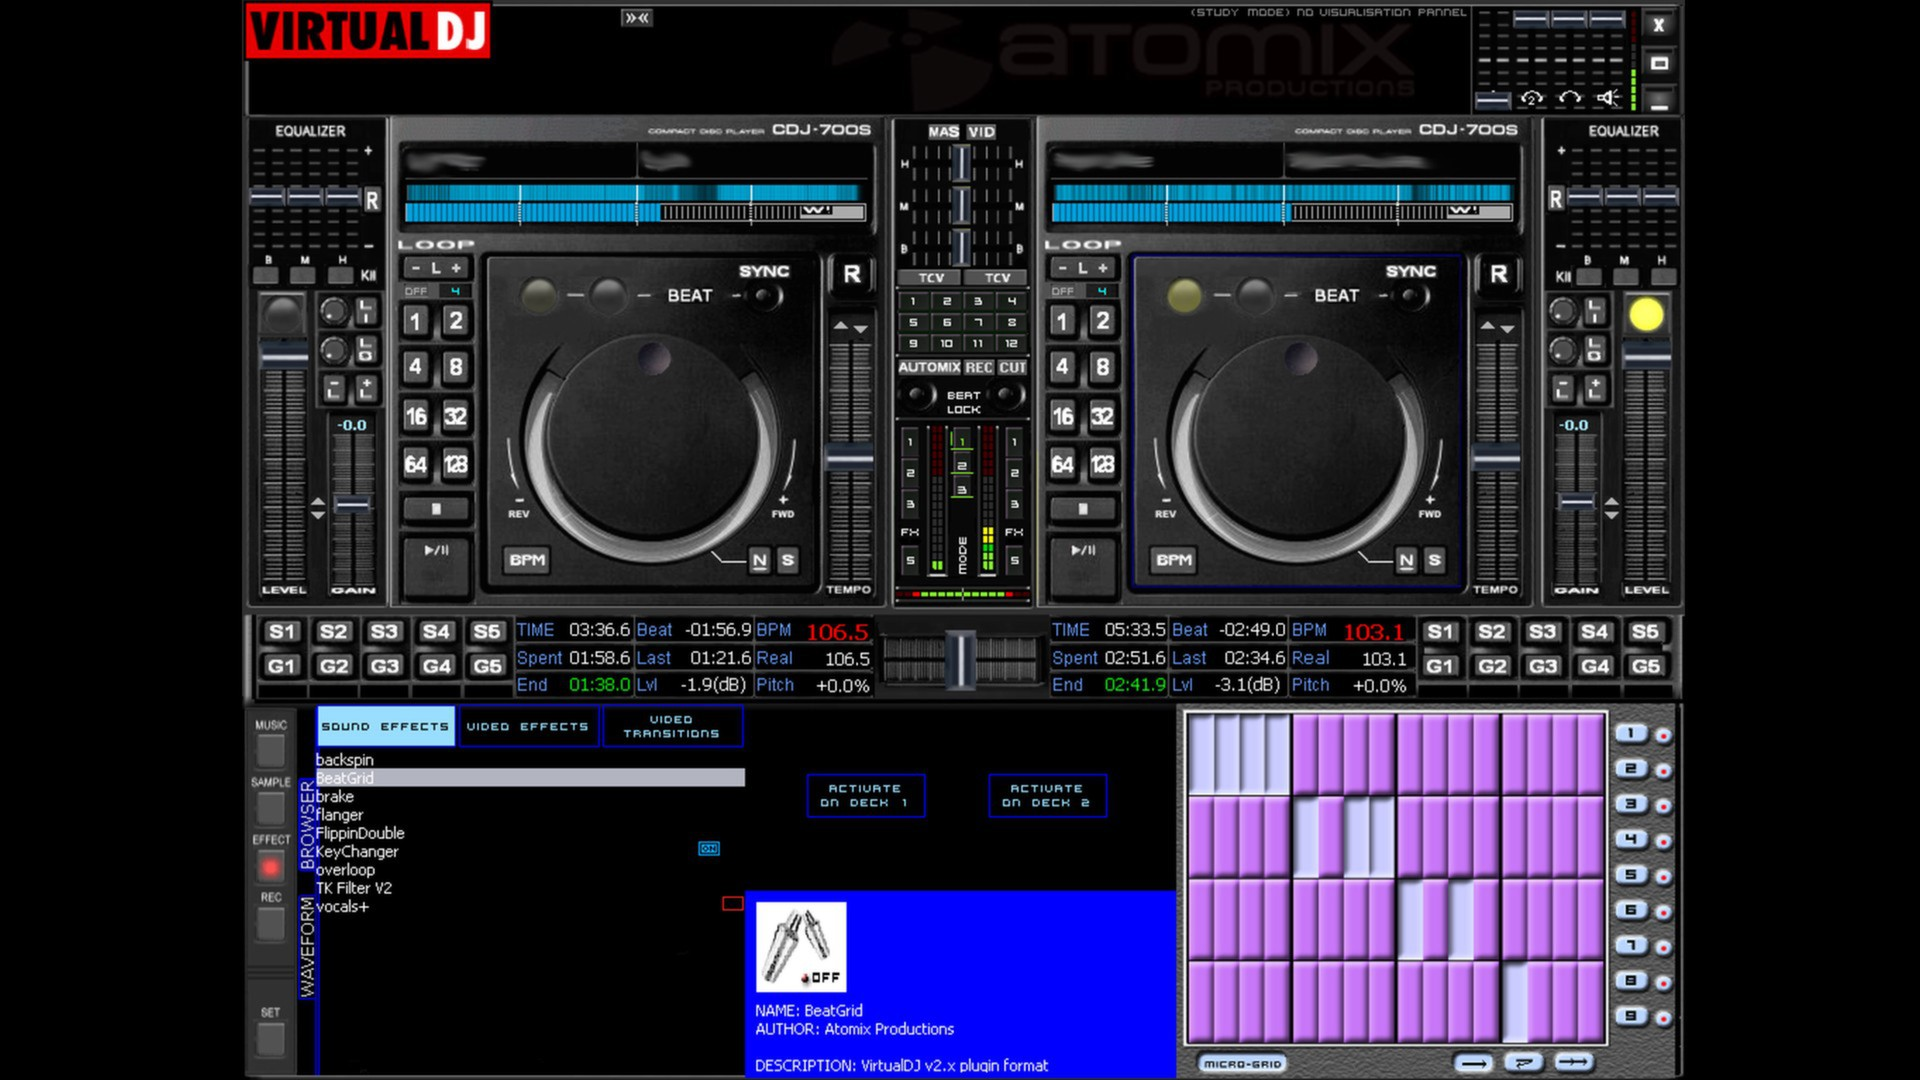 Virtual DJ 8 Free Download Full Version - Bing